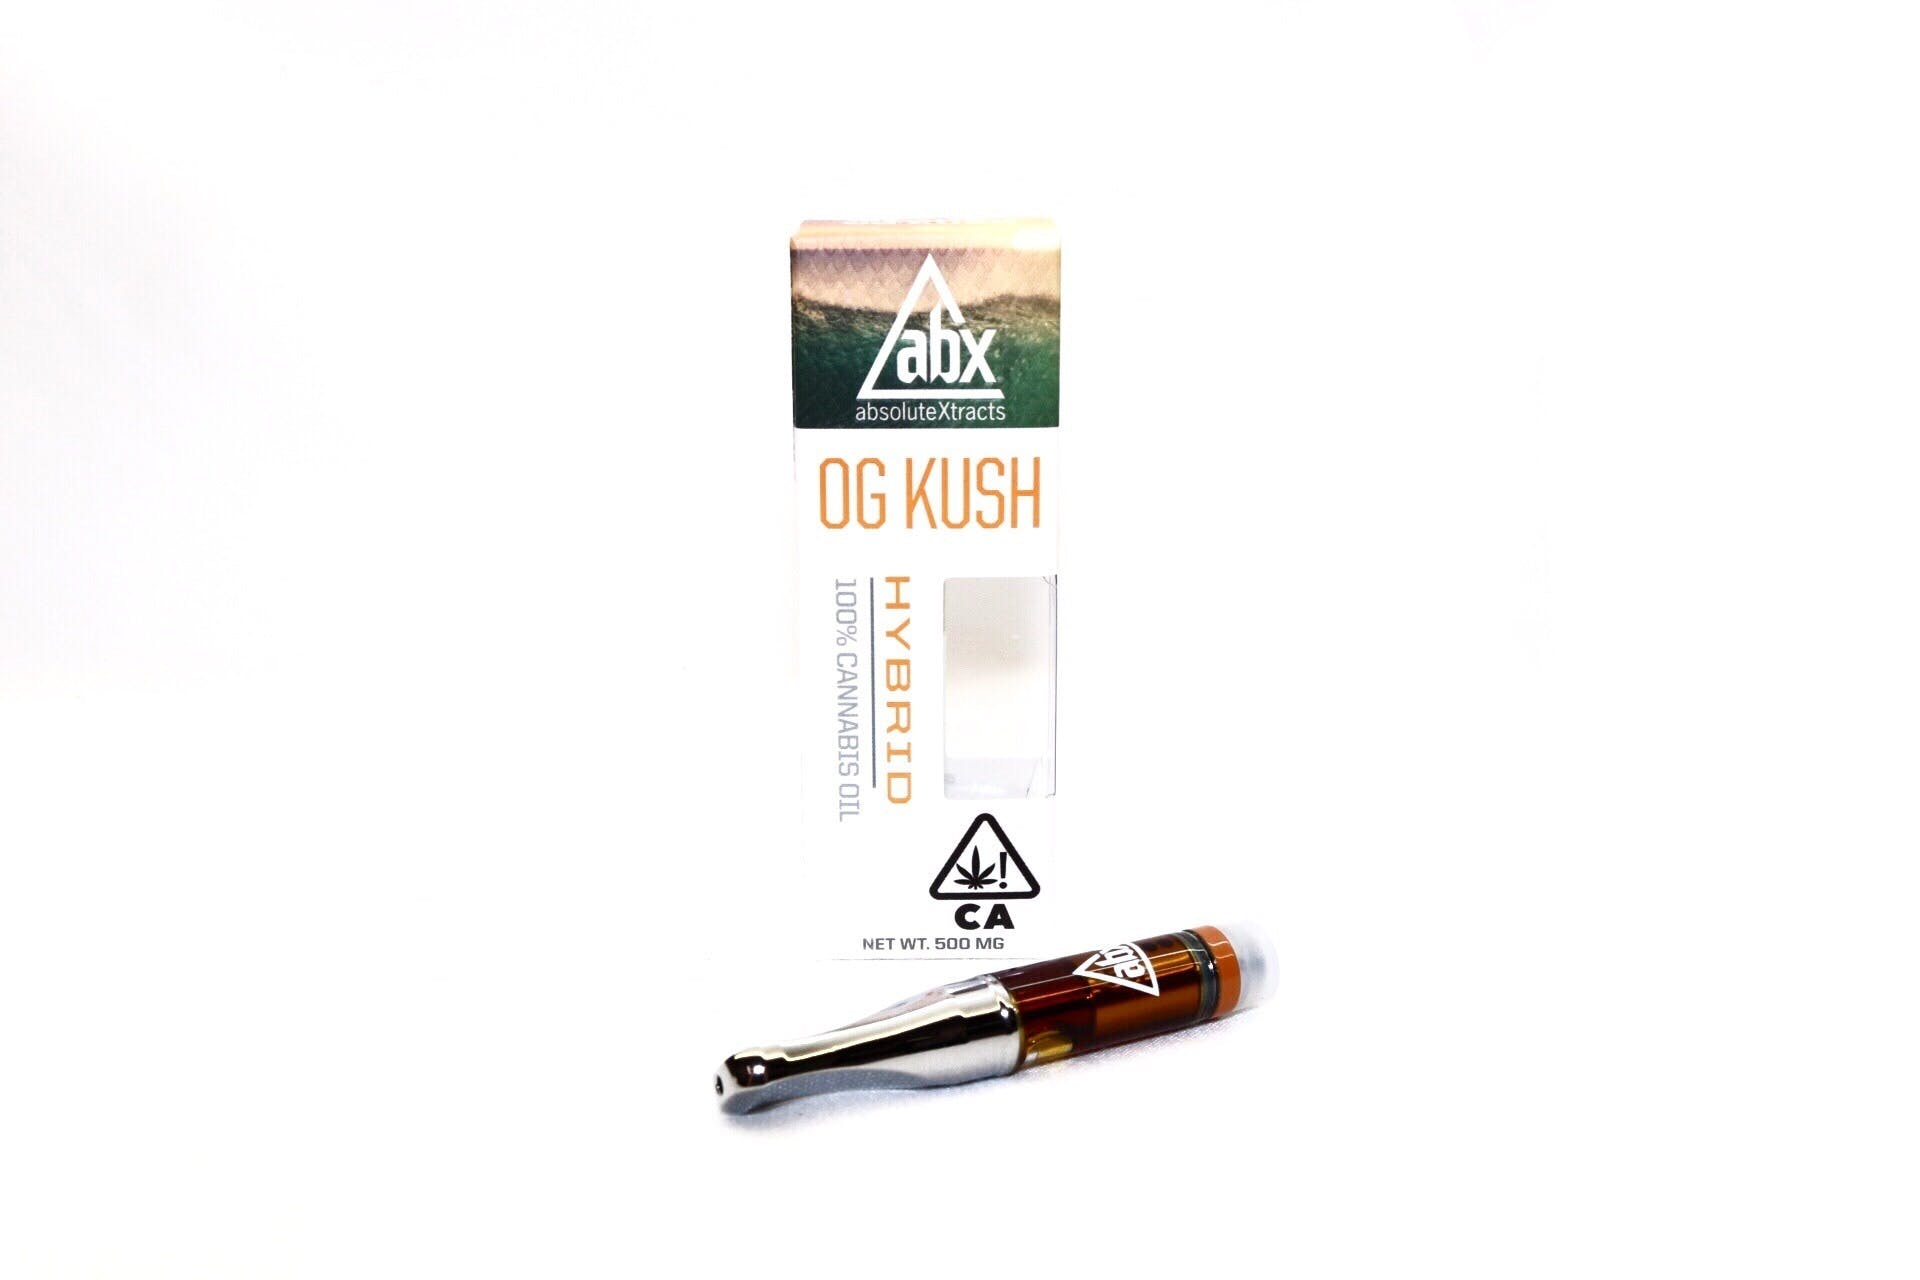 concentrate-absolutextracts-abx-og-kush-vape-cartridge-500mg